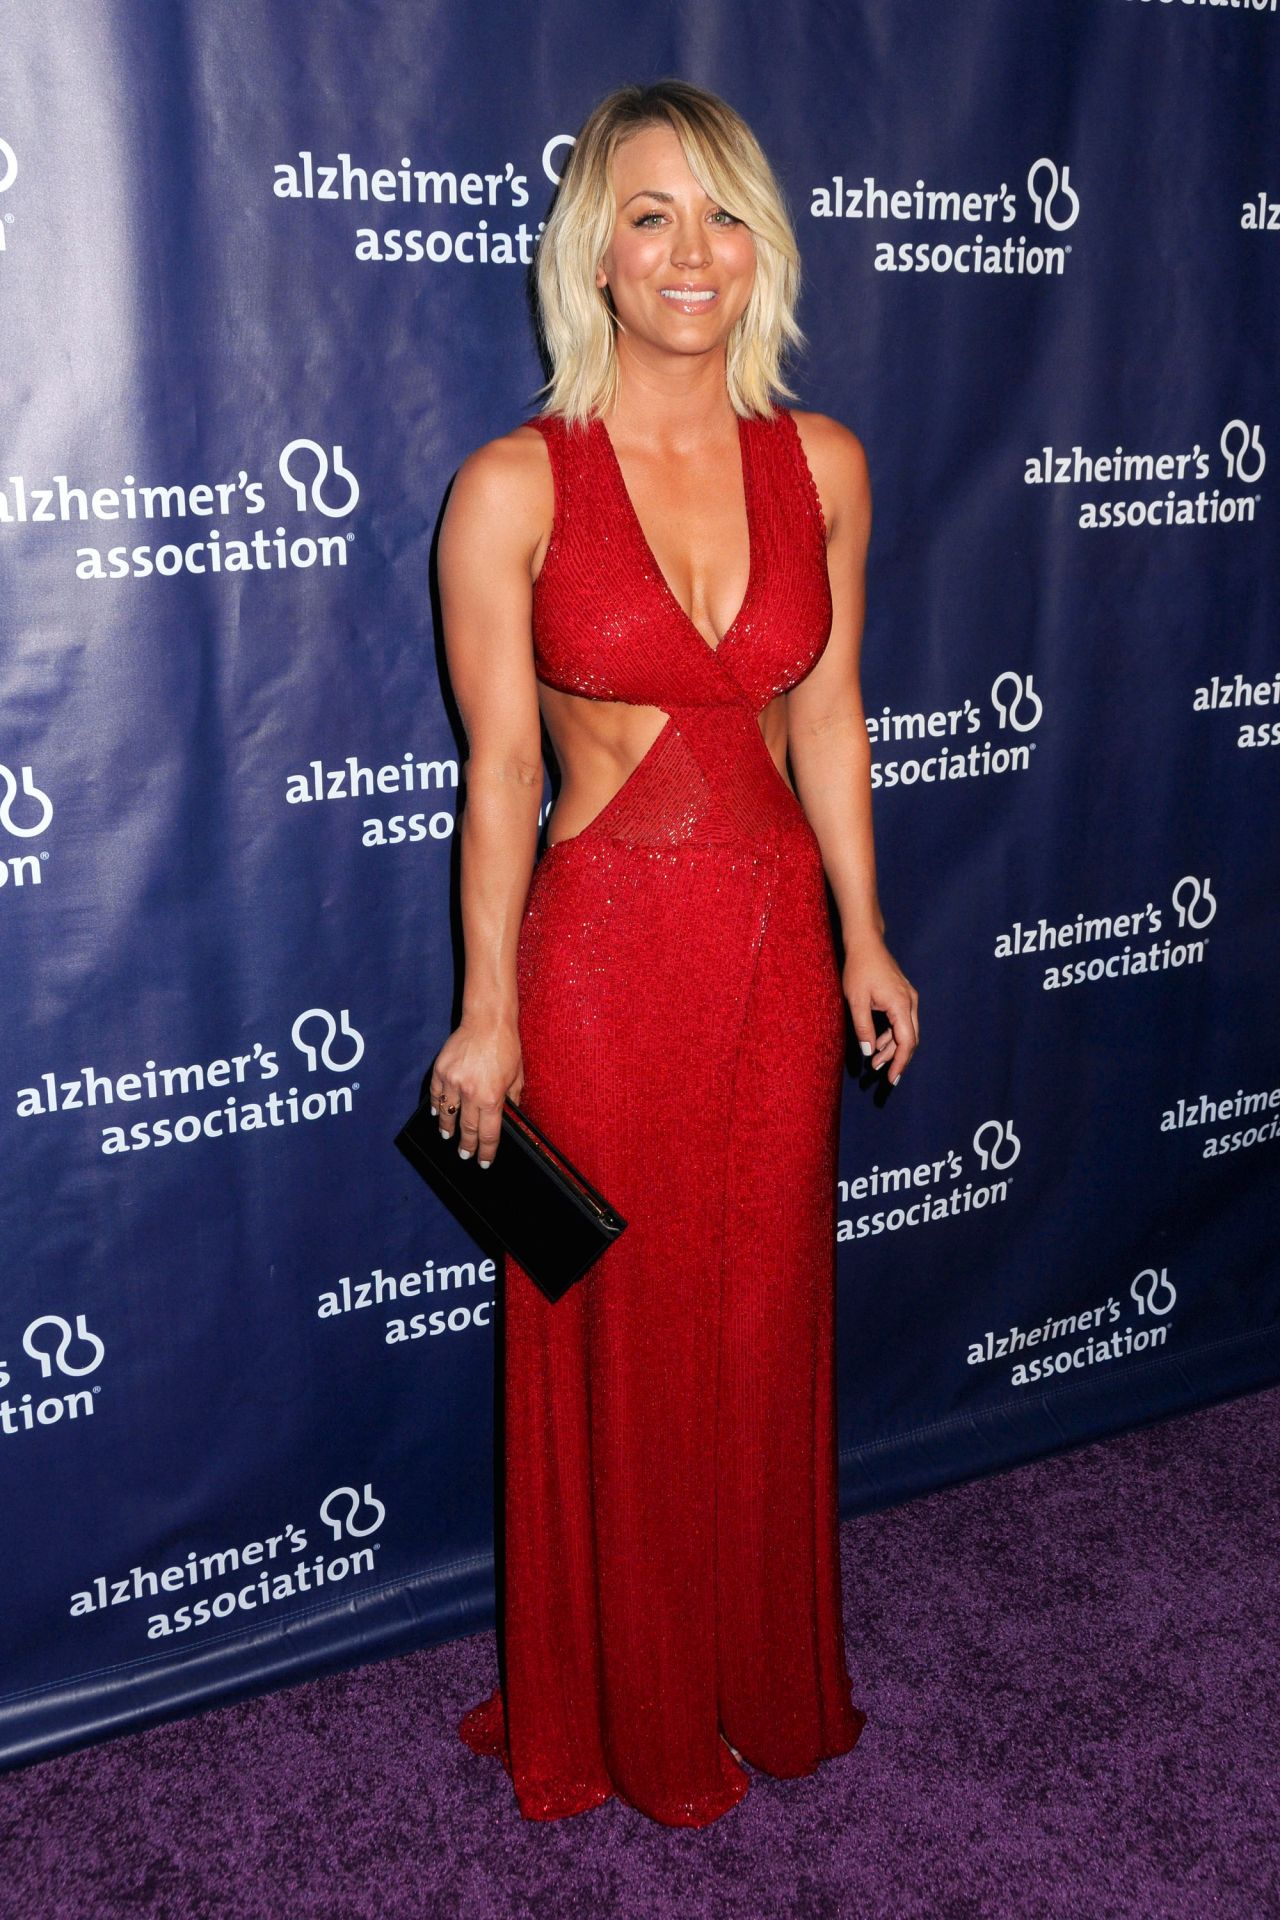 kaley-cuoco-2016-alzheimer-s-association-a-night-at-sardi-s-in-beverly-hills-19